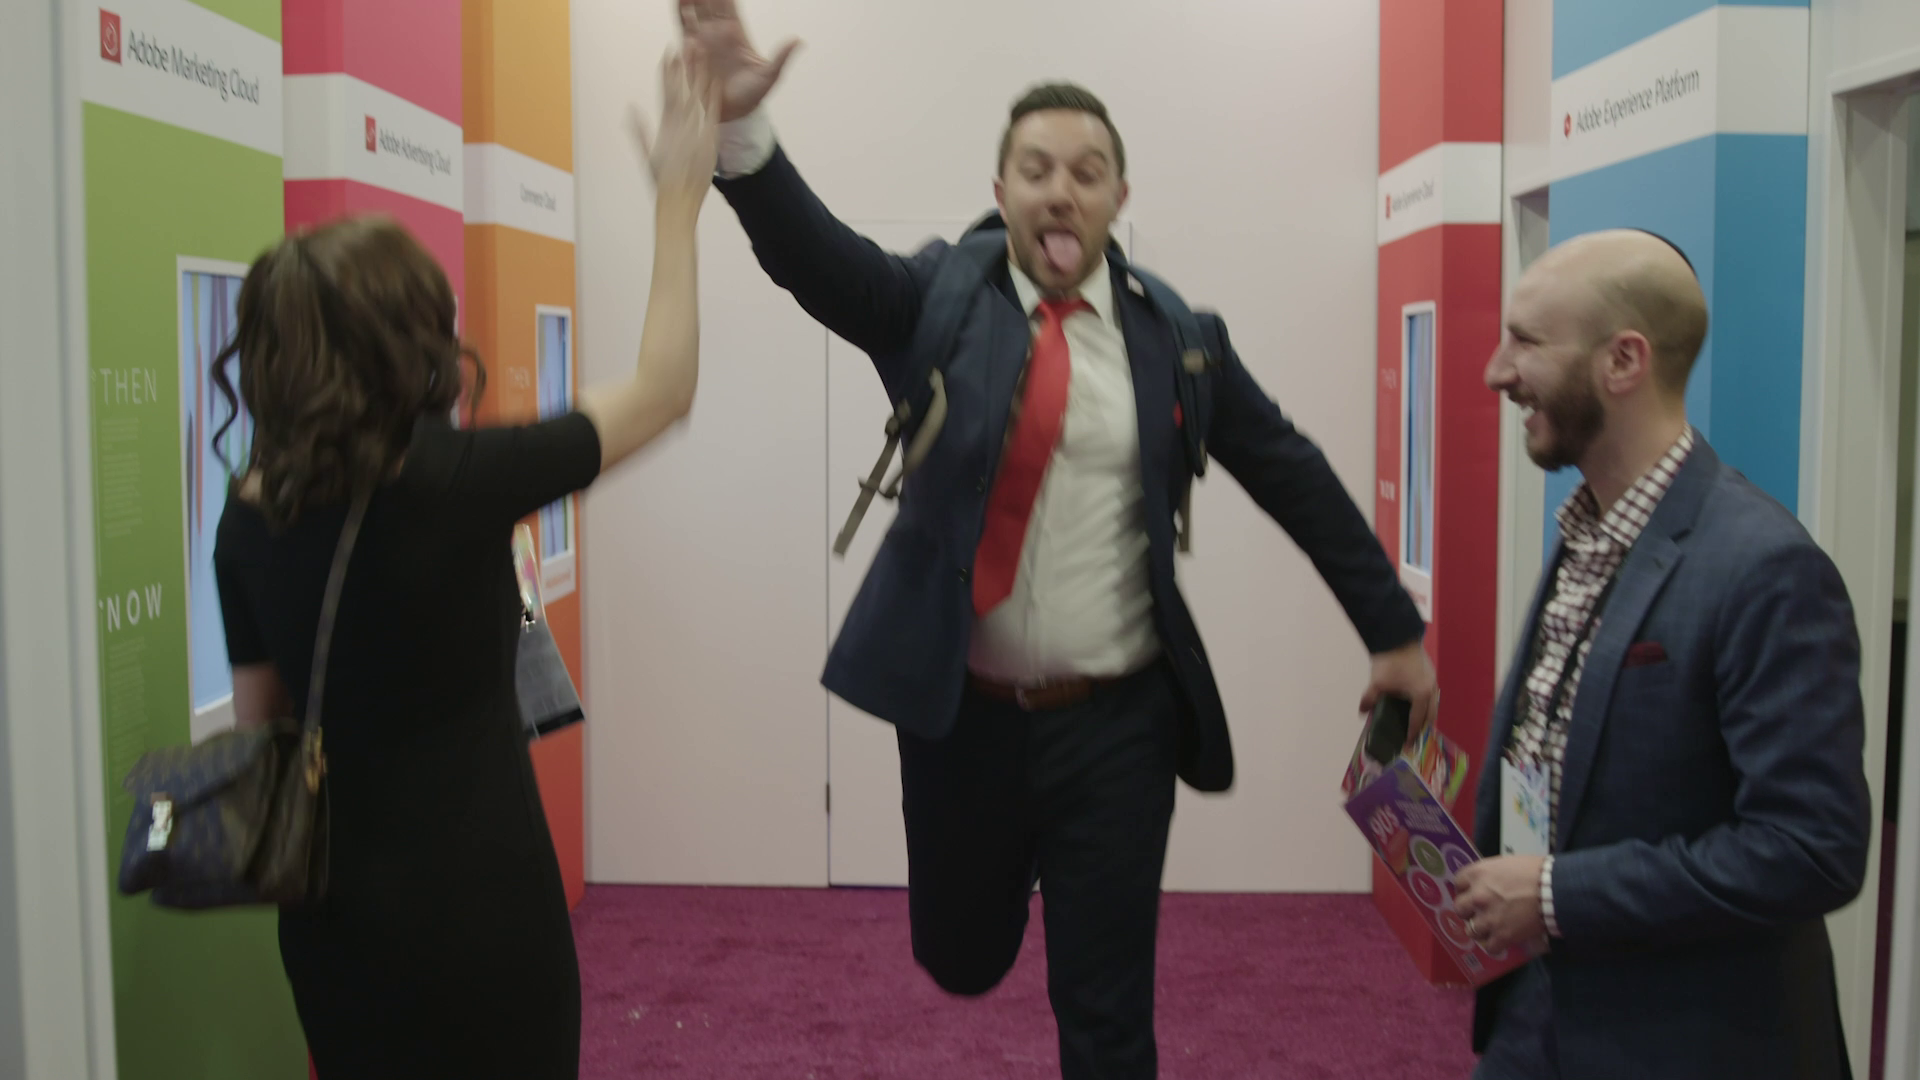 The Adobe Summit in Las Vegas features a 1994 escape the room-style event where you will explore life in a 90s corporate office, video rental store, and living room (Photos Courtesy Hotwire Global)